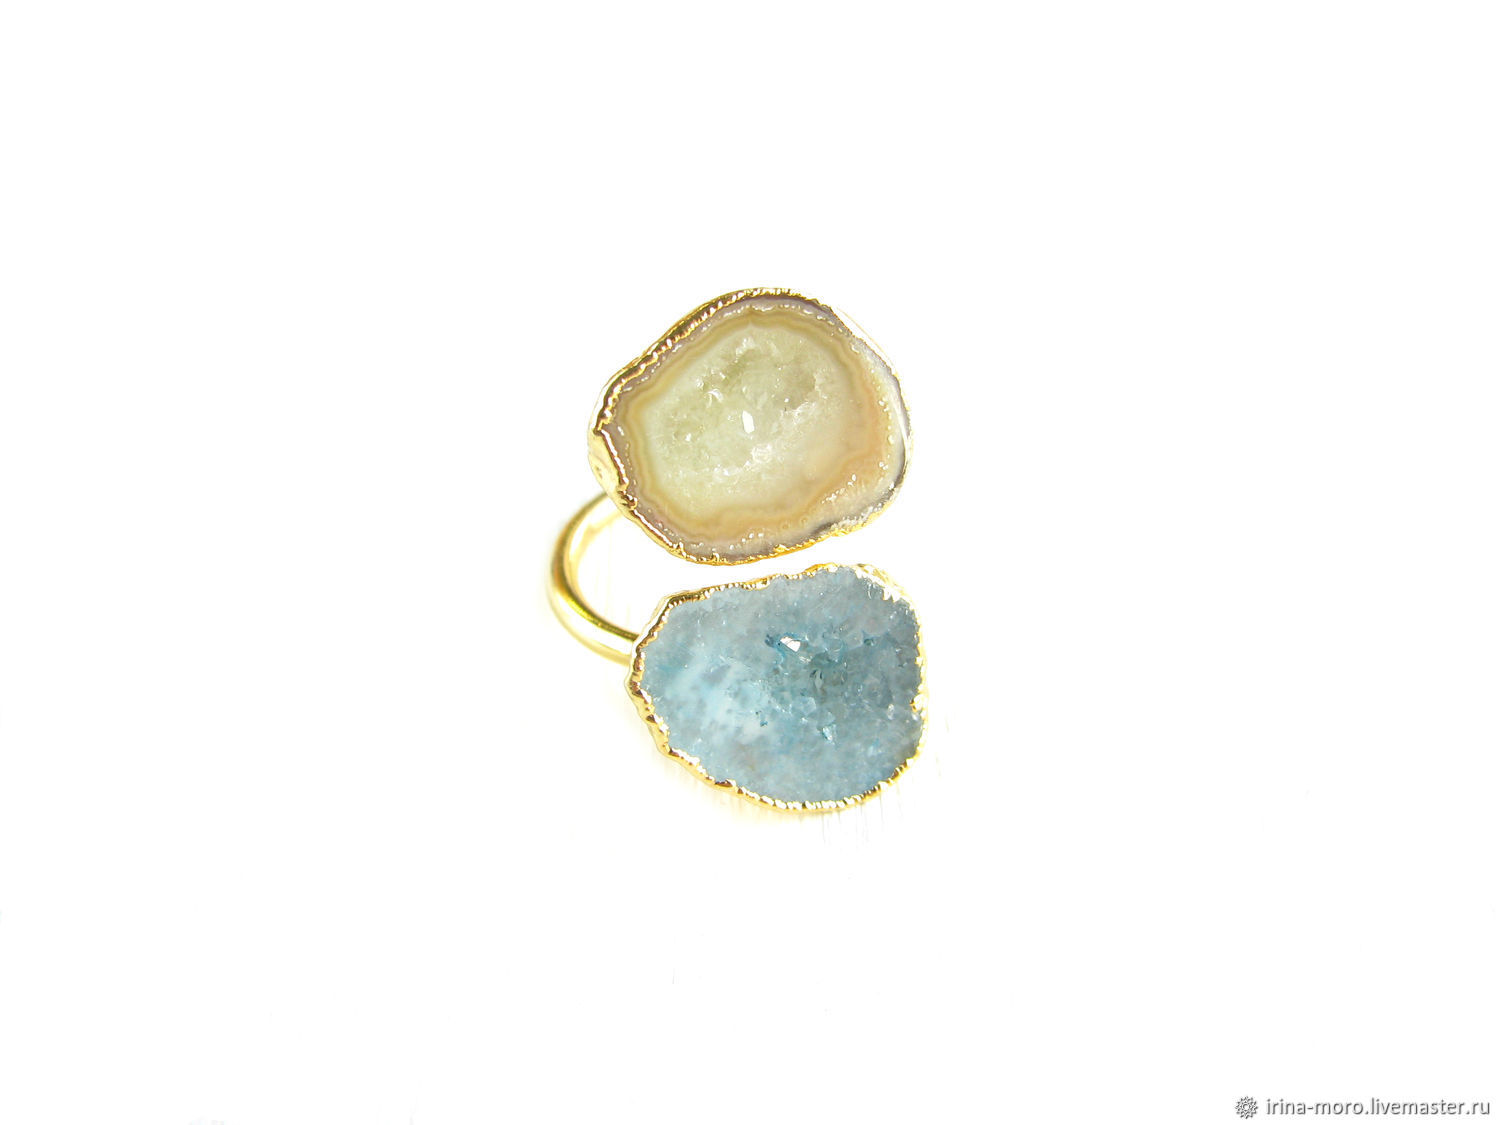 Gold ring with quartz 'Spring' ring with two stones, Rings, Moscow,  Фото №1